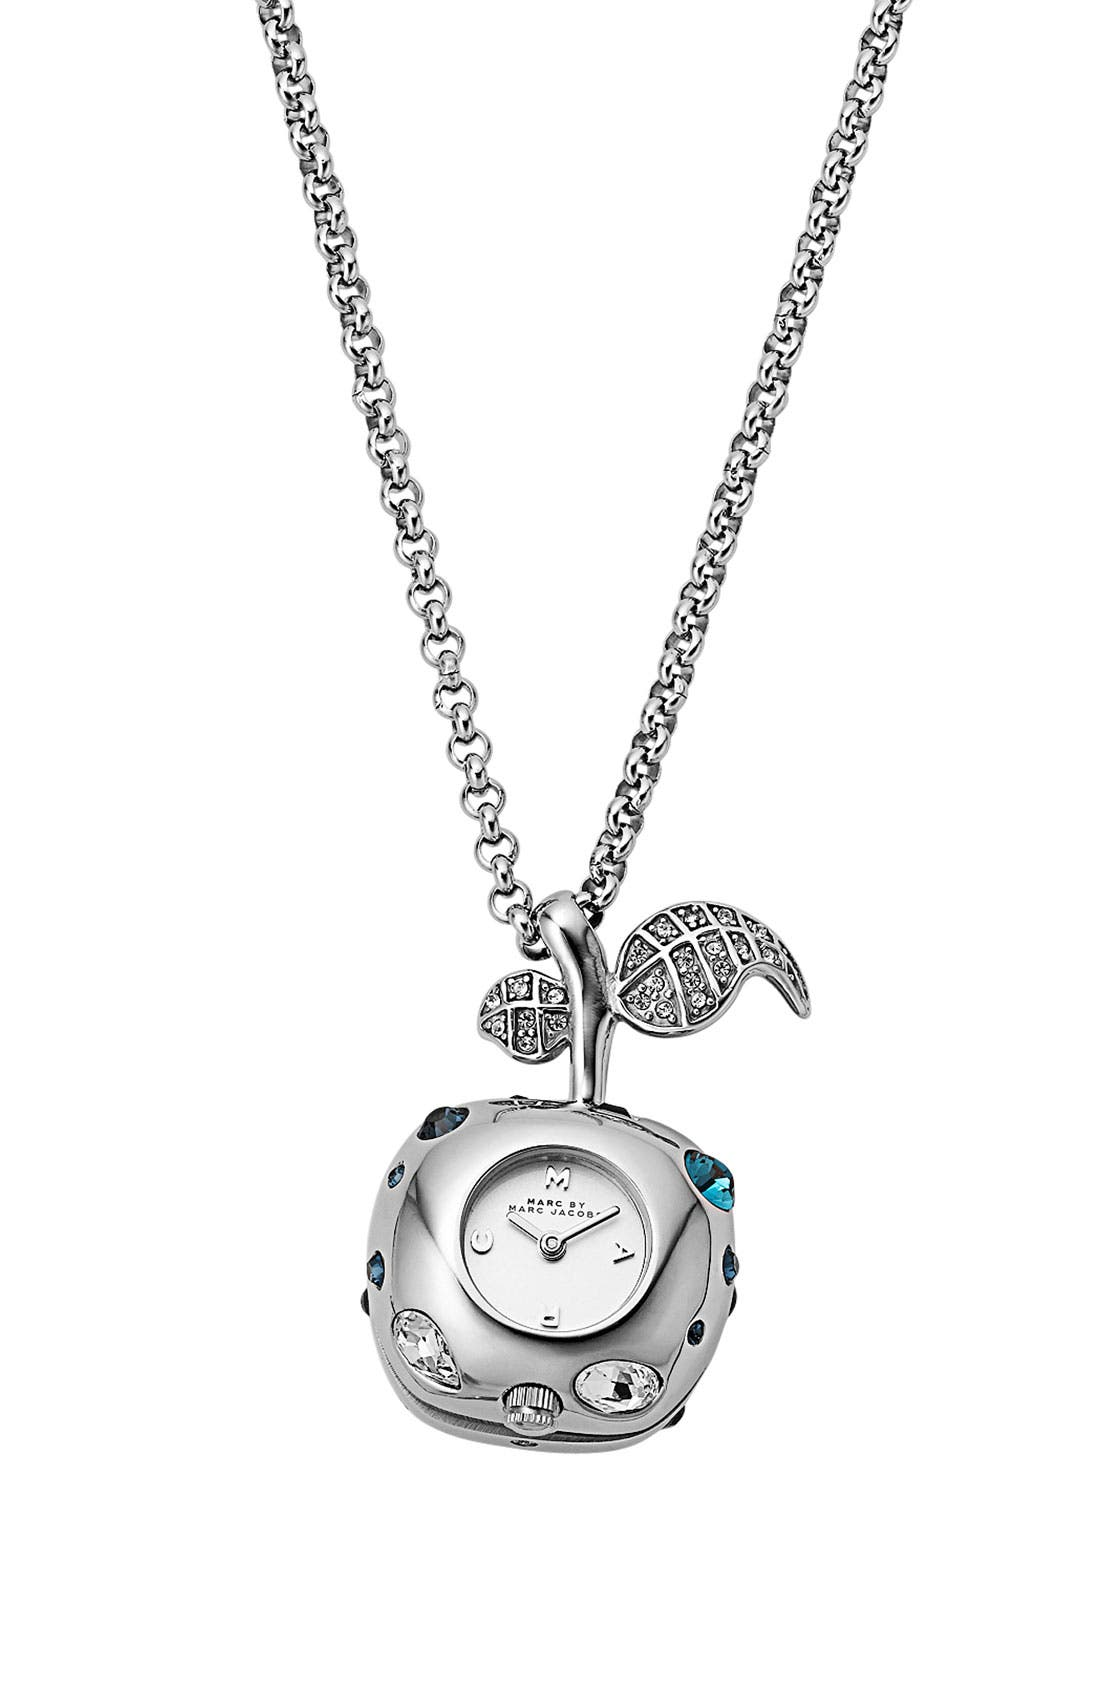 Alternate Image 1 Selected - MARC BY MARC JACOBS 'Dexter Bauble' Watch Necklace